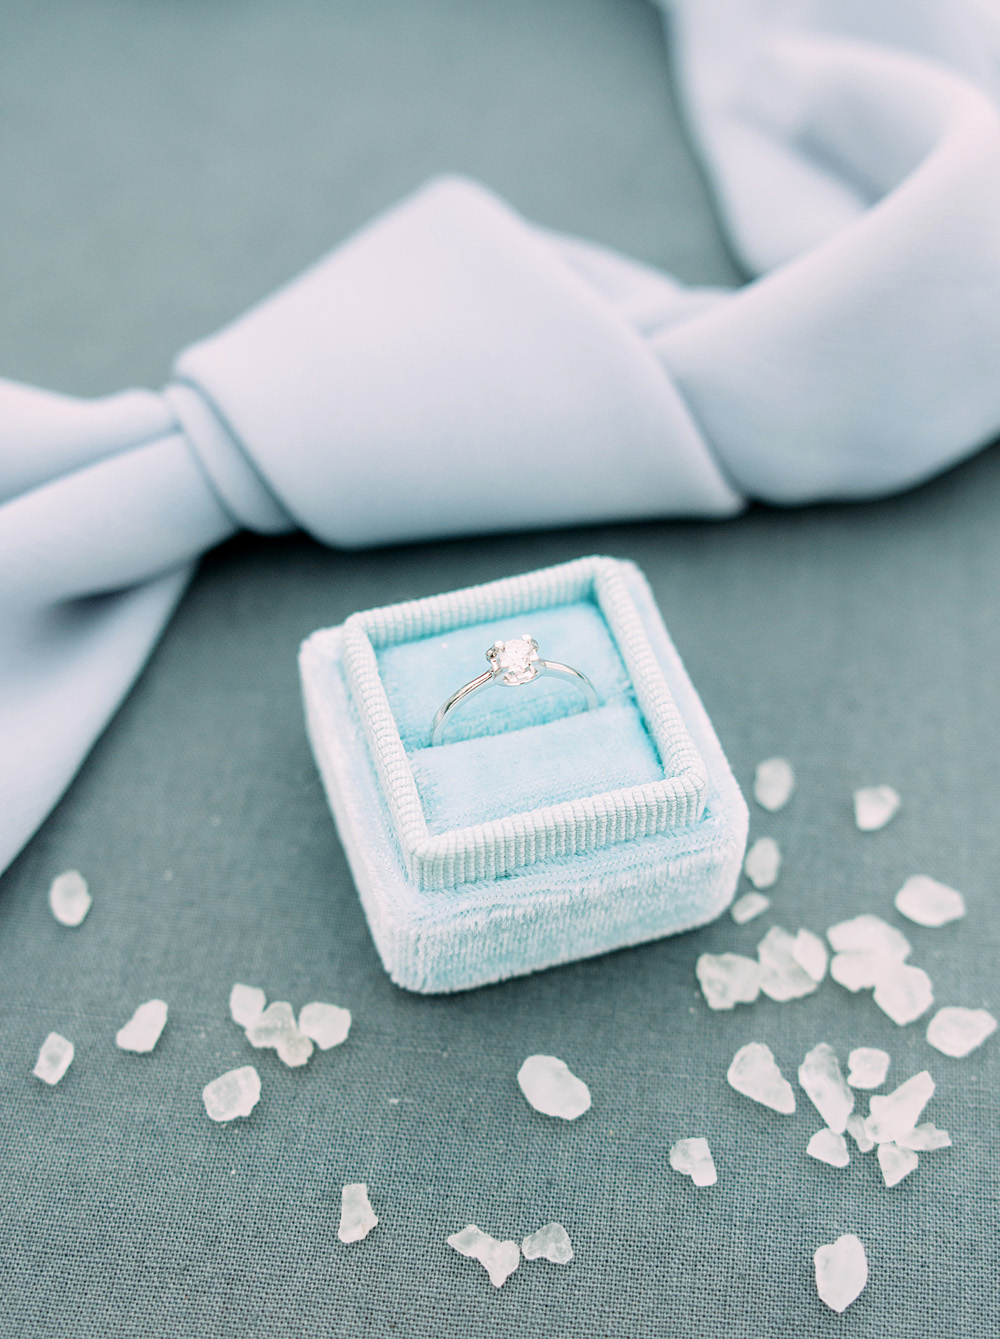 Romantic Blue Lakeside Wedding Inspiration - Ring in Blue Mrs Ring Box